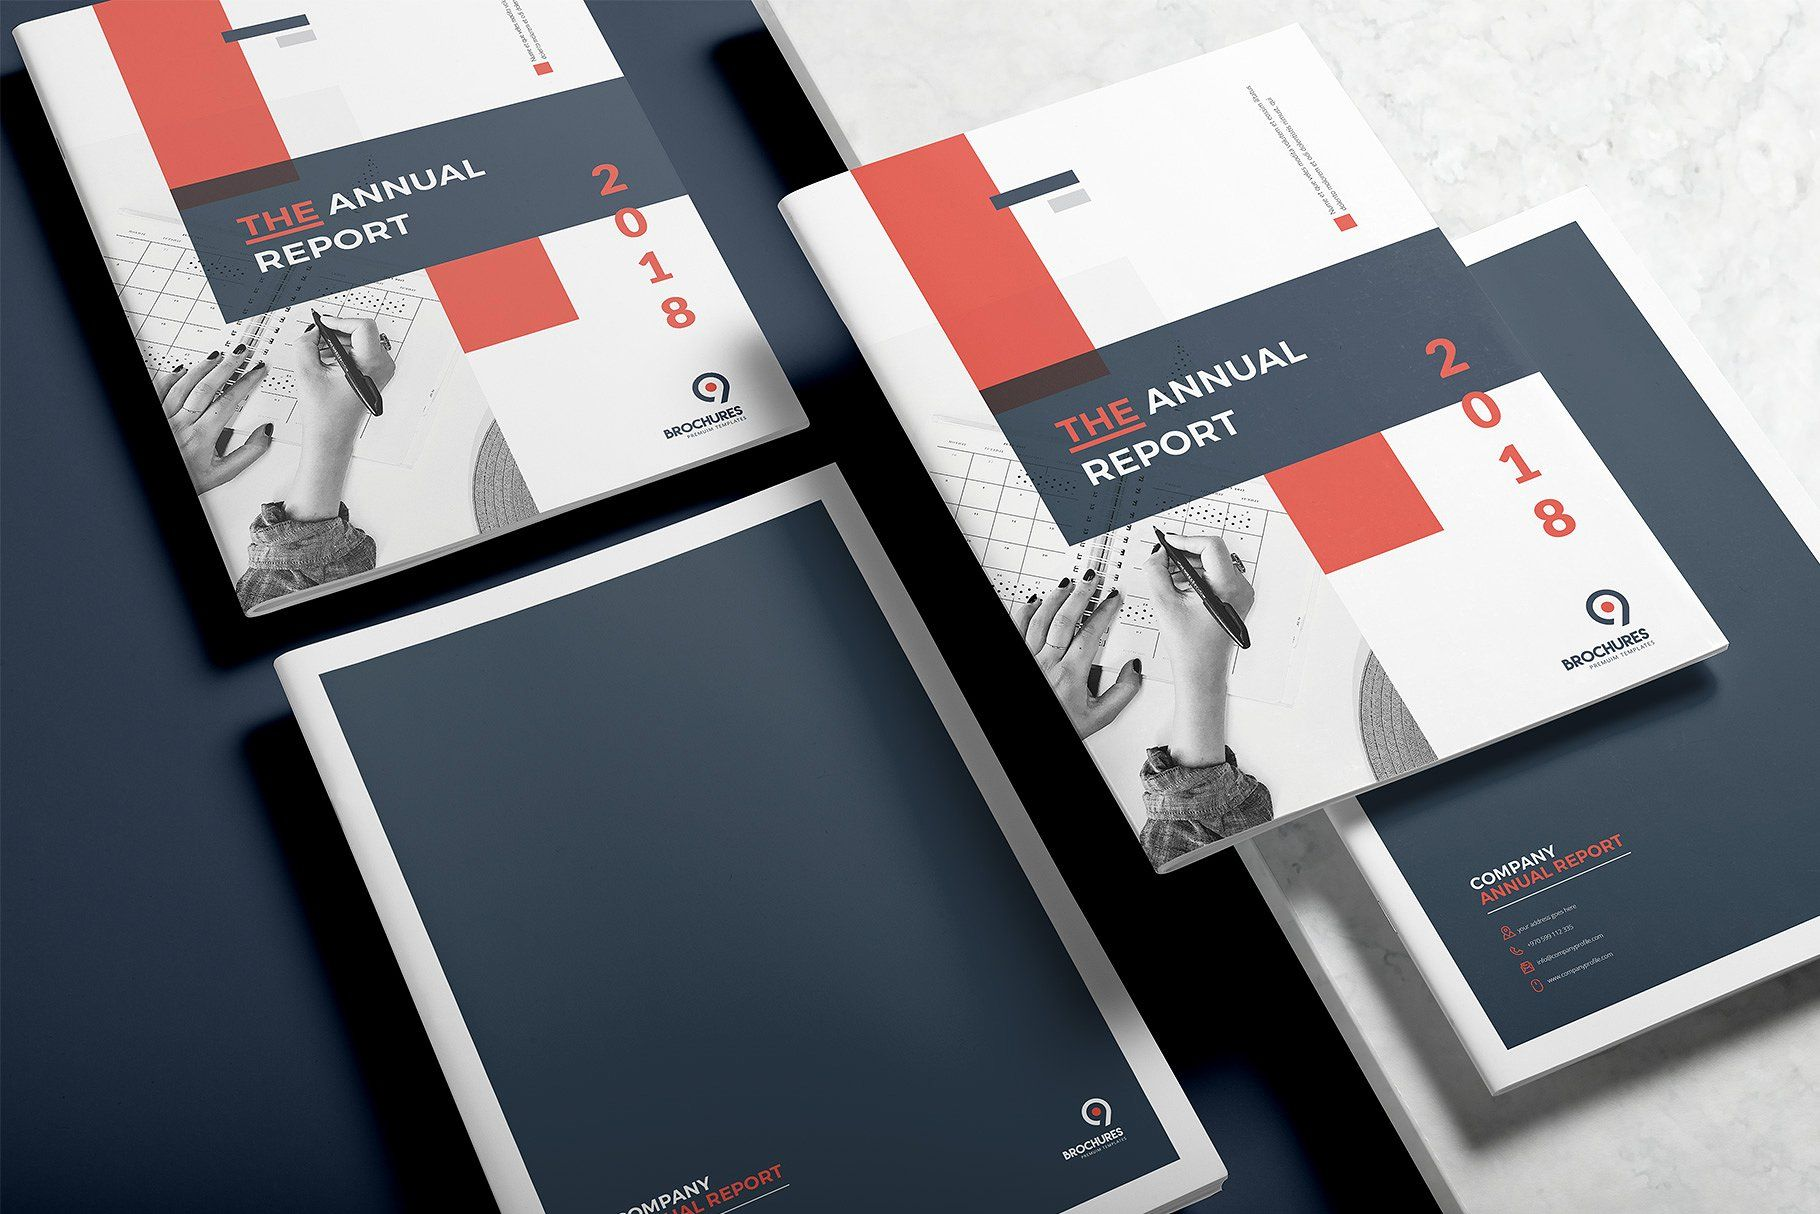 Annual Report 24 Pages Indesign Size Features Contents Business